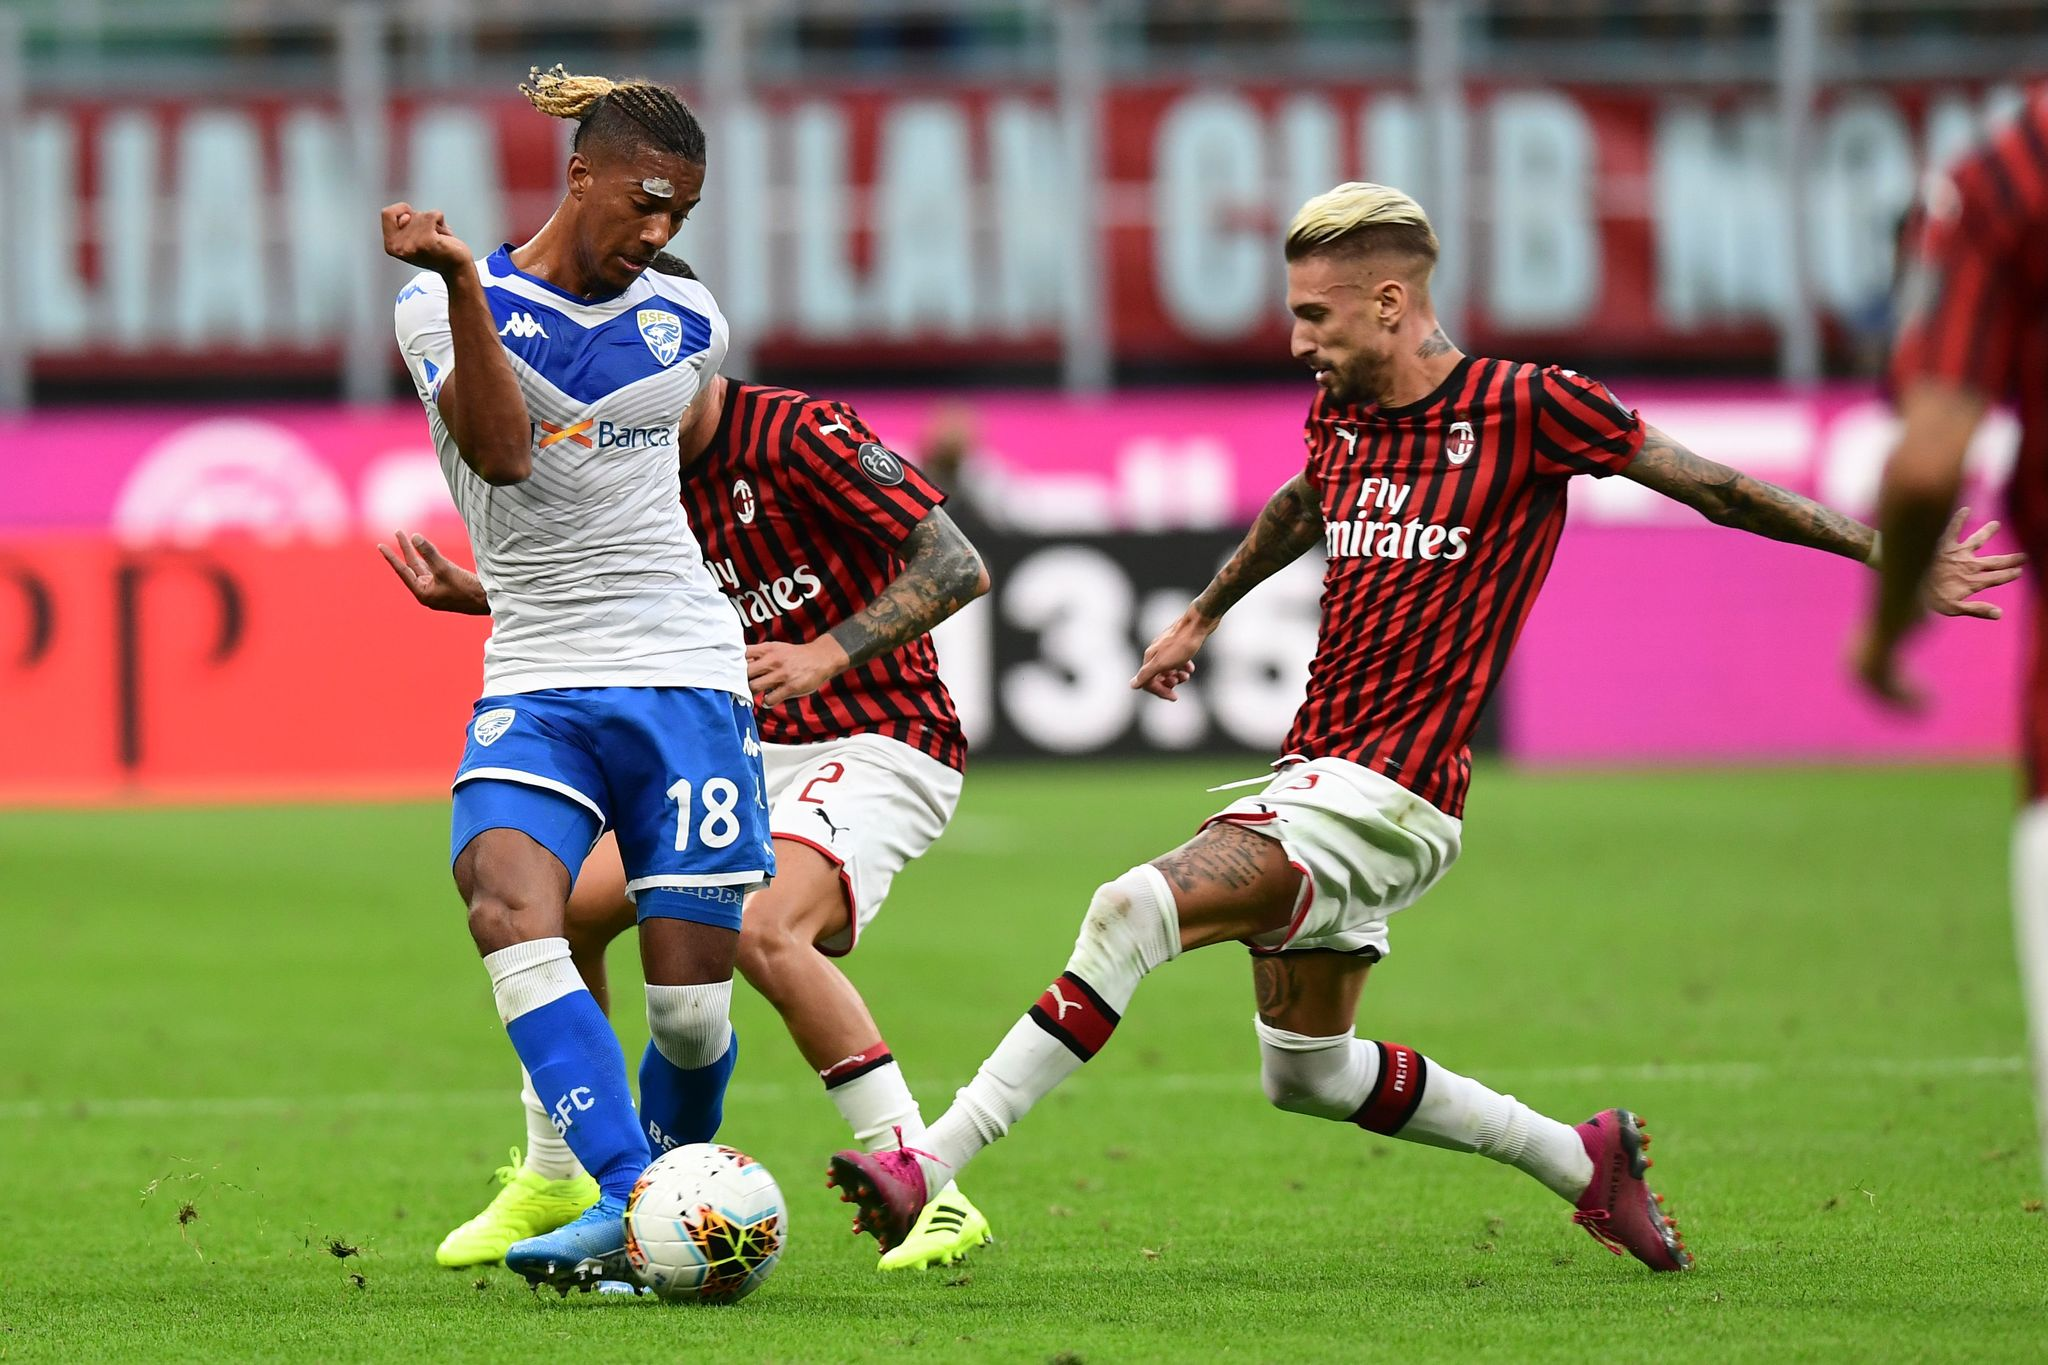 Brescias French forward Florian Aye vies with AC <HIT>Milan</HIT>s Spanish forward Samu Castillejo during the Italian Serie A football match AC <HIT>Milan</HIT> vs Brescia on August 31, 2019 at the San Siro stadium in <HIT>Milan</HIT>. (Photo by Miguel MEDINA / AFP)